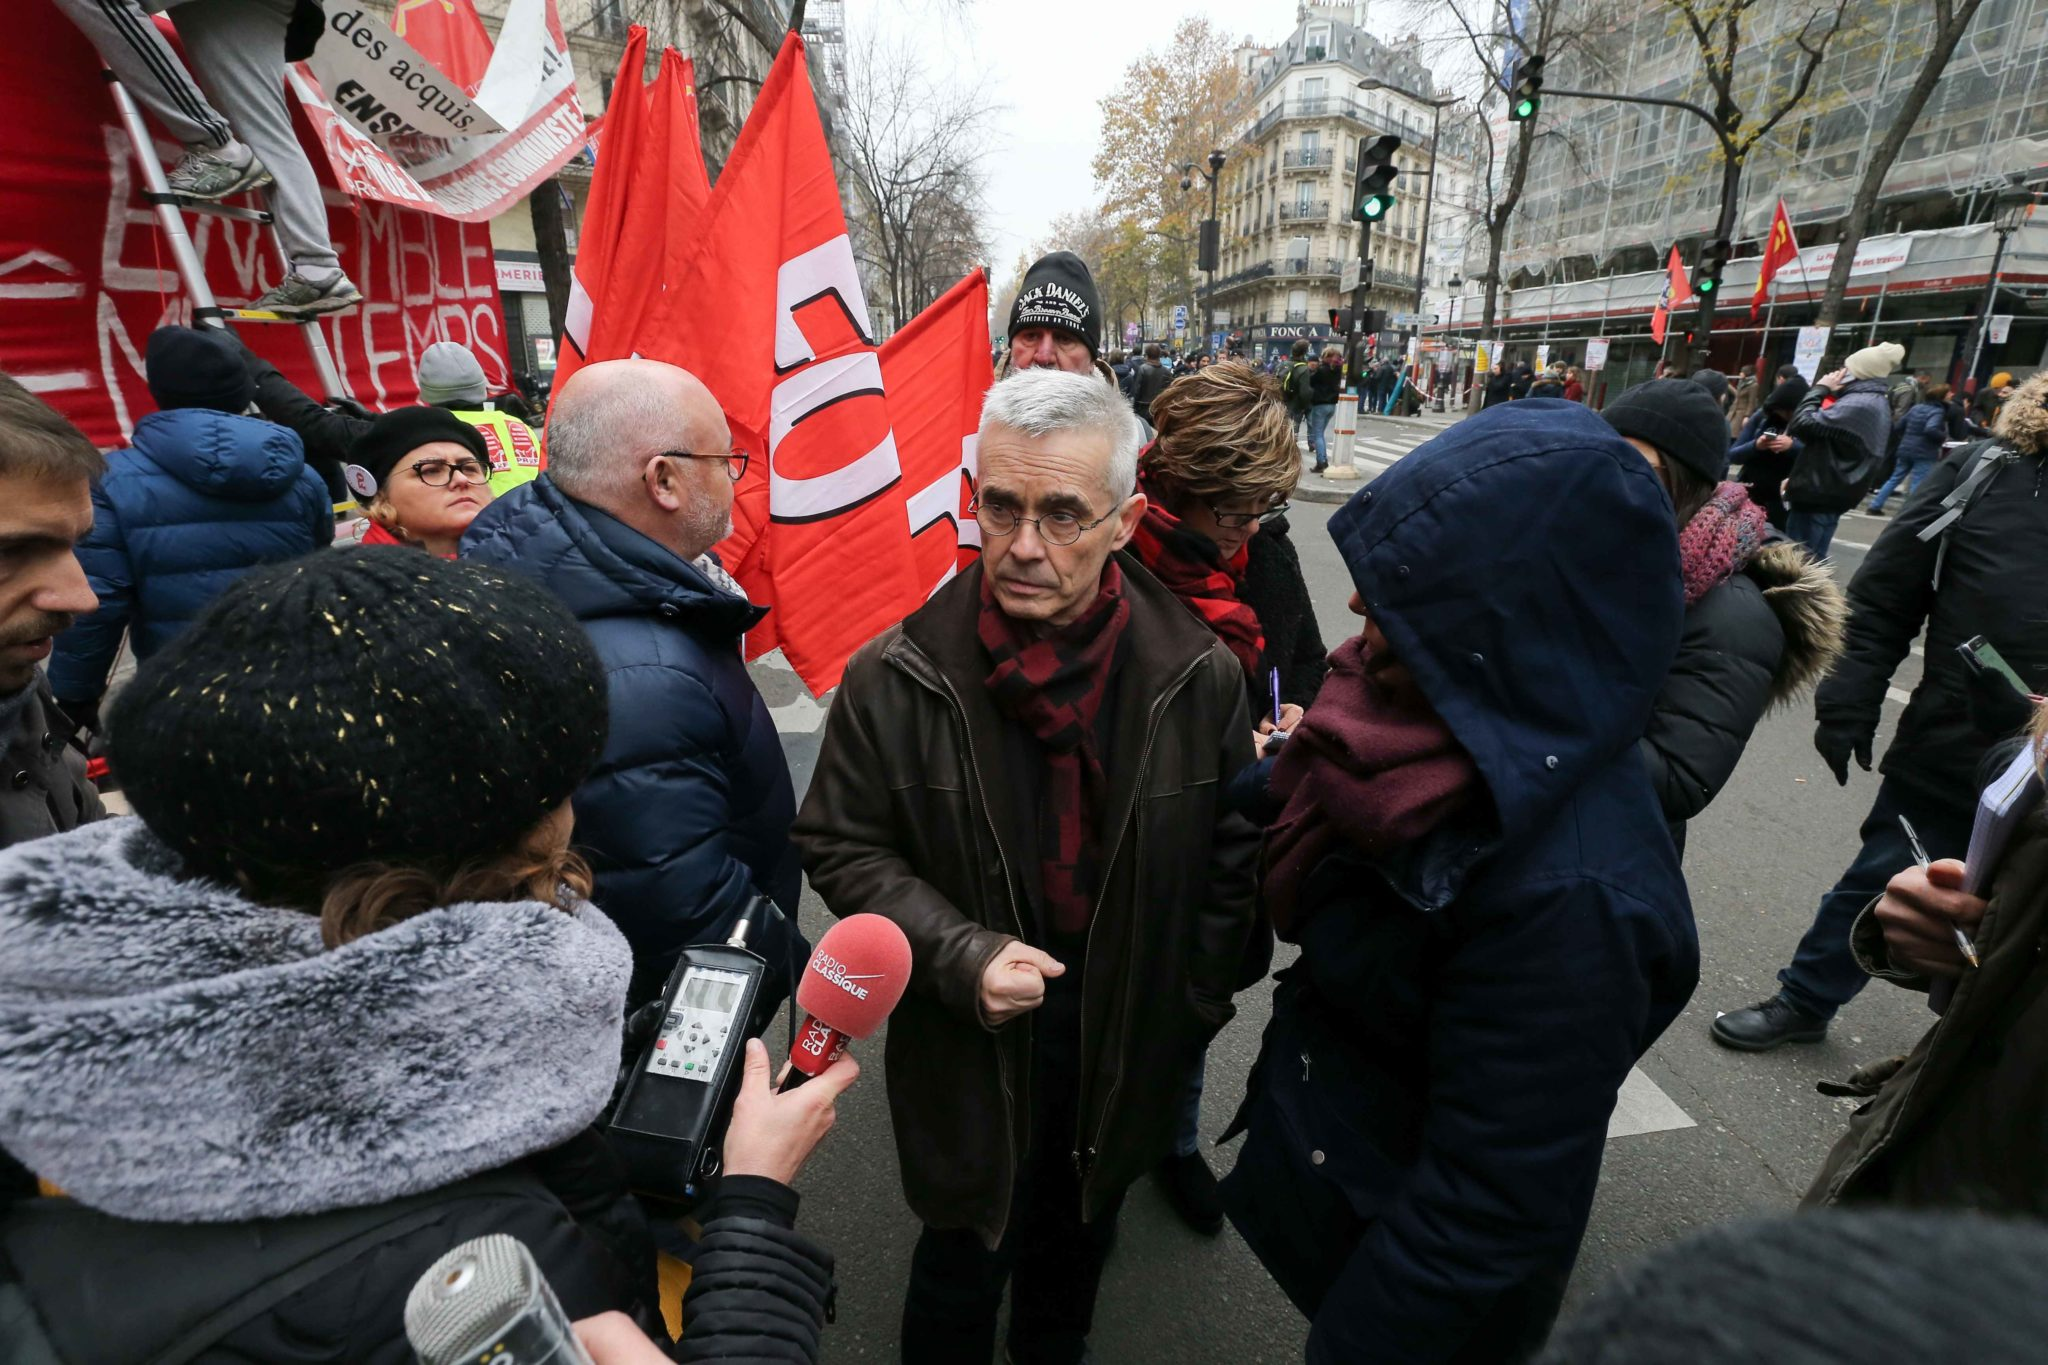 Secretary-General of the French Union Force Ouvriere (FO) Yves Veyrier (C) talks with the press during a demontration to protest against the pension overhauls, in Paris, on December 5, 2019 as part of a national general strike. Trains cancelled, schools cl